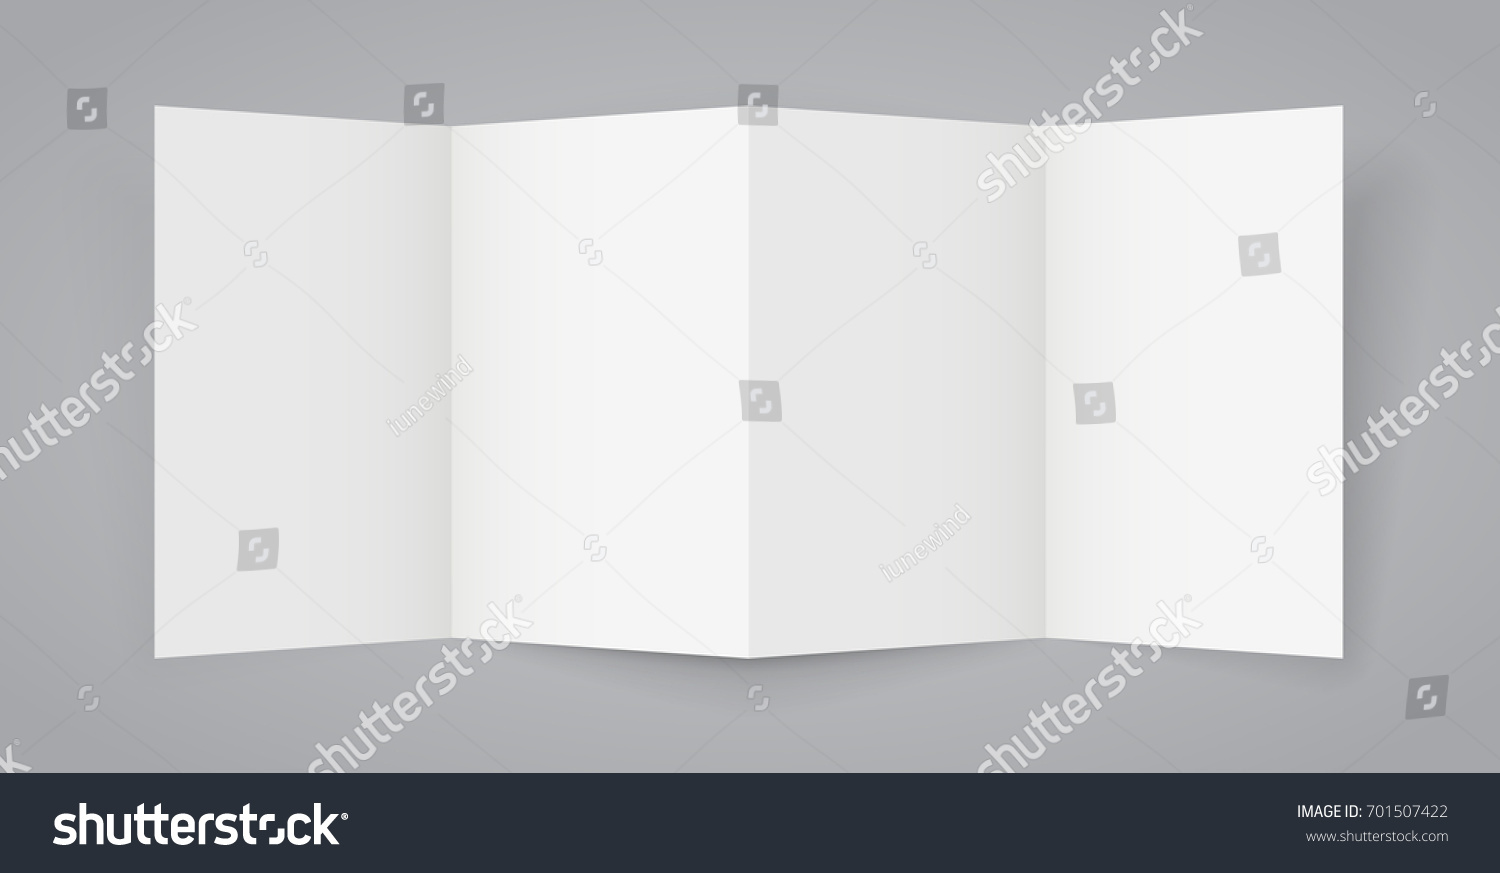 Fourfold Aa Brochure Template Realistic Vector Stock Vector - Four fold brochure template